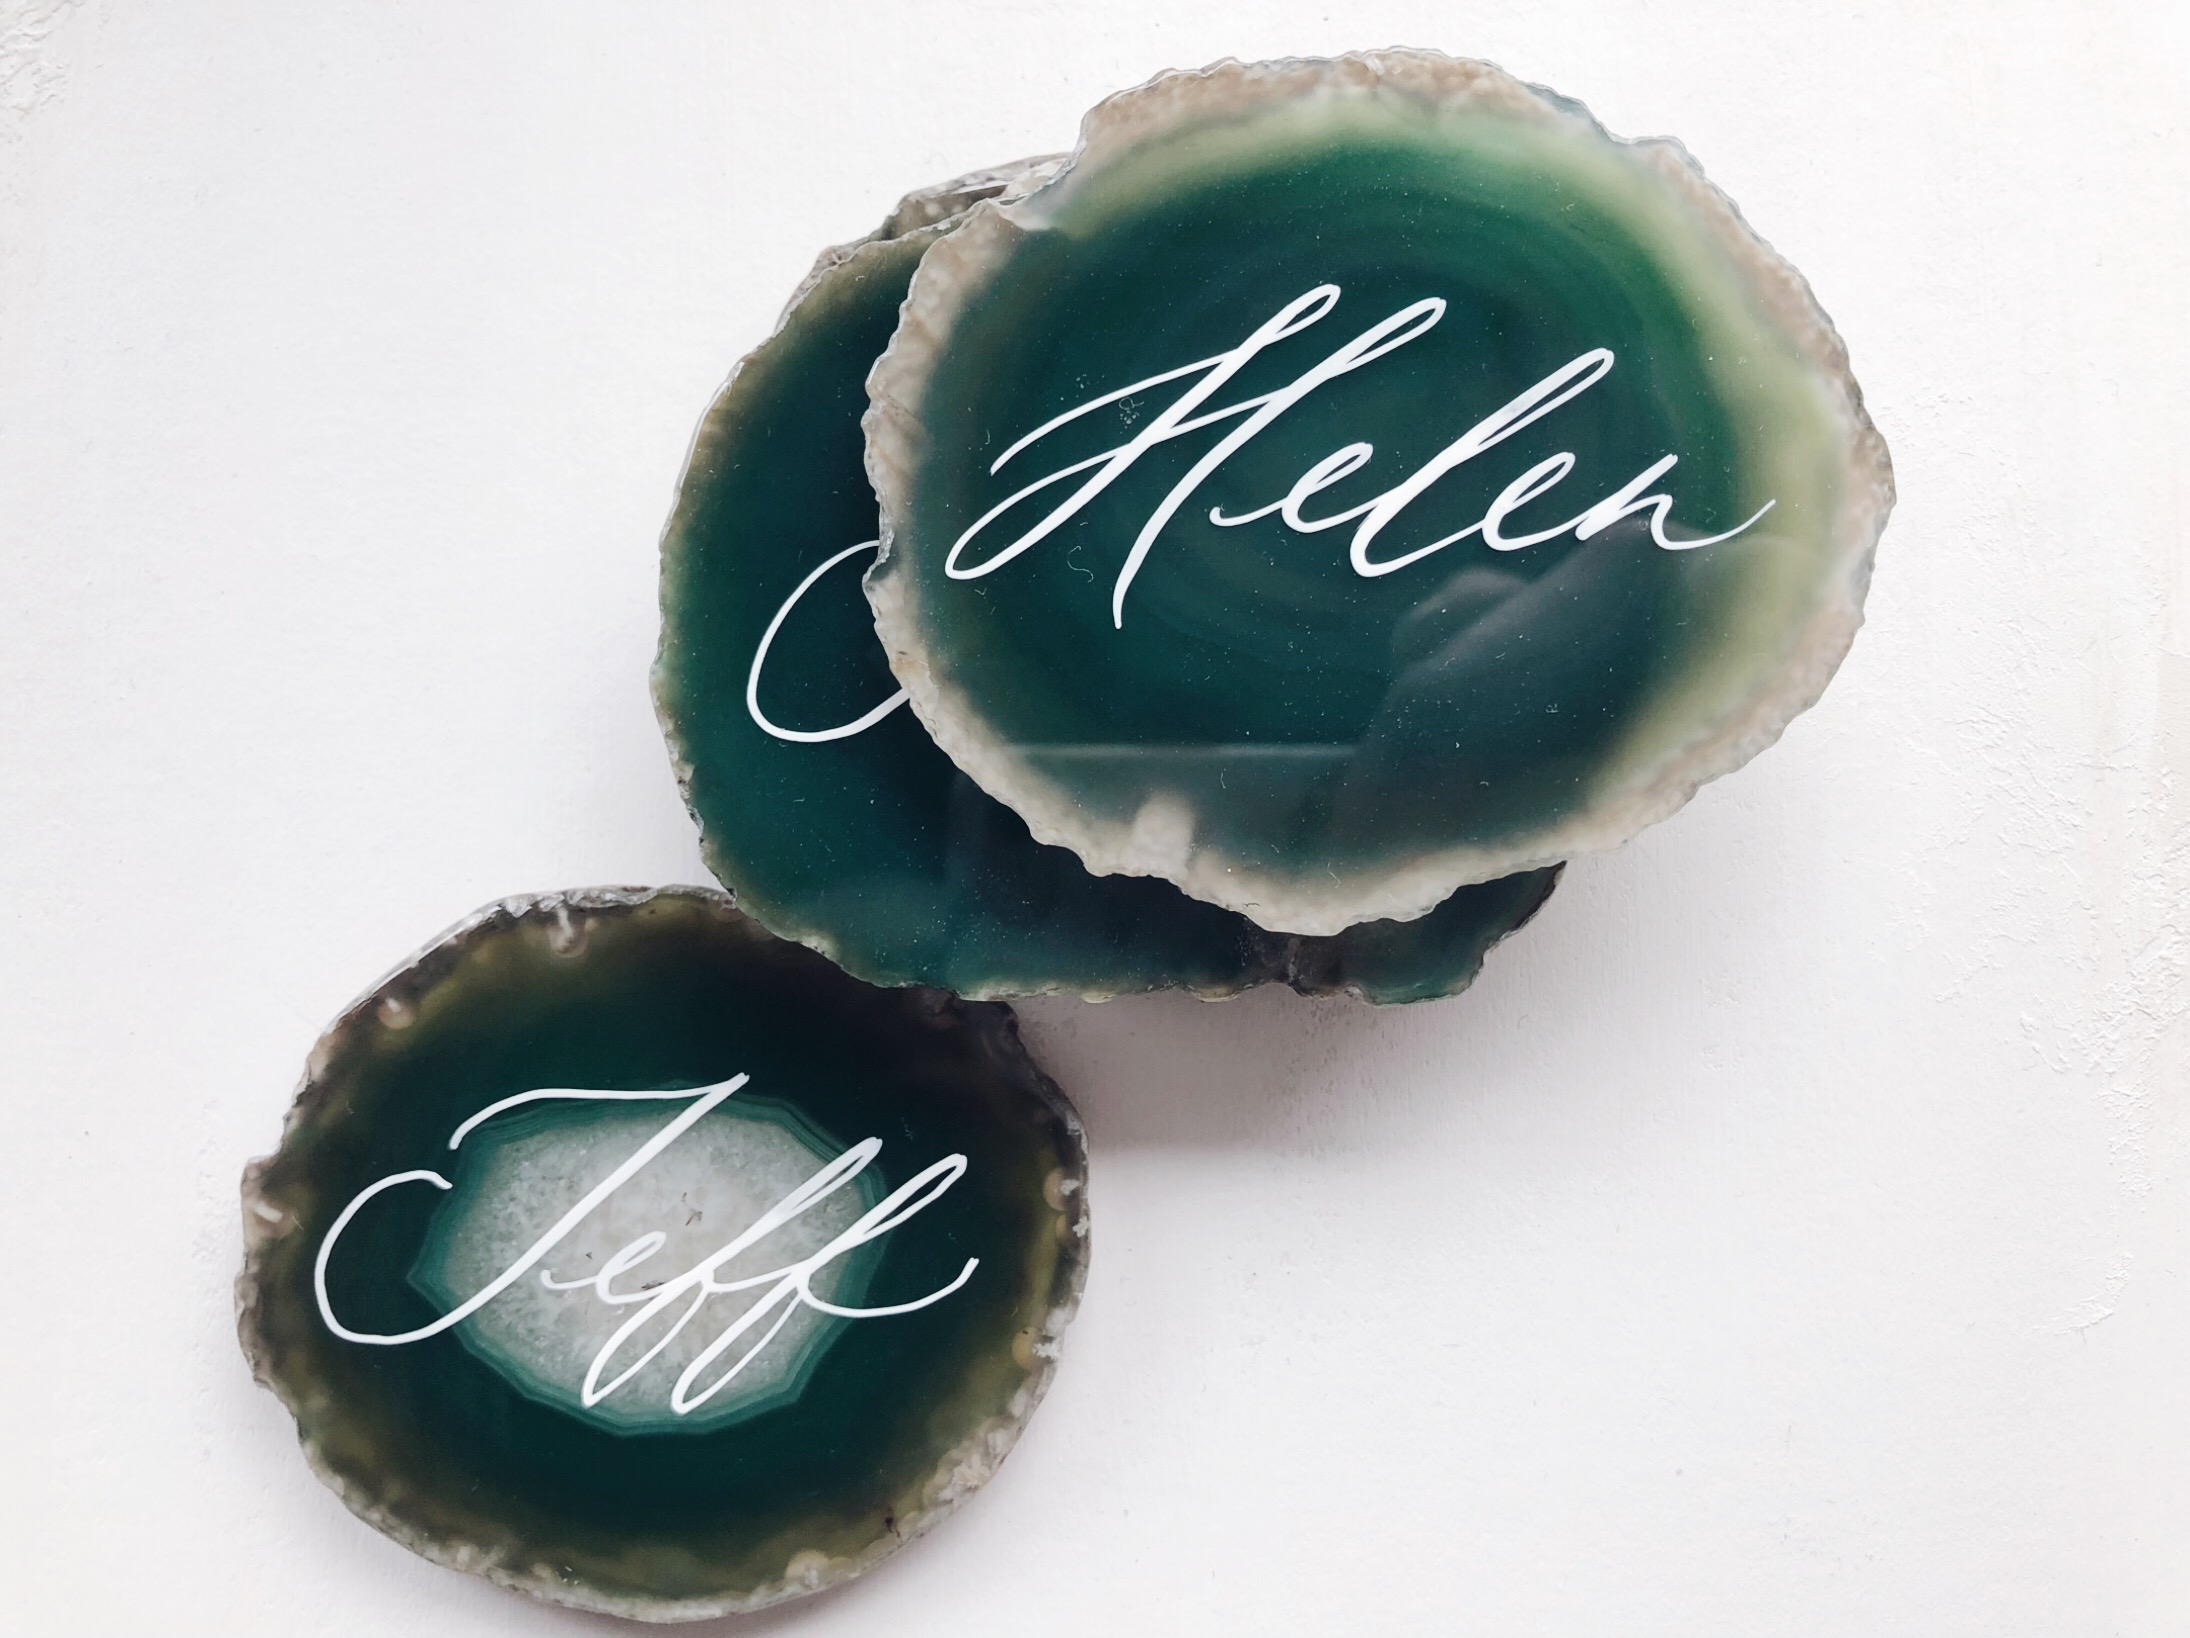 Green agate with white calligraphy